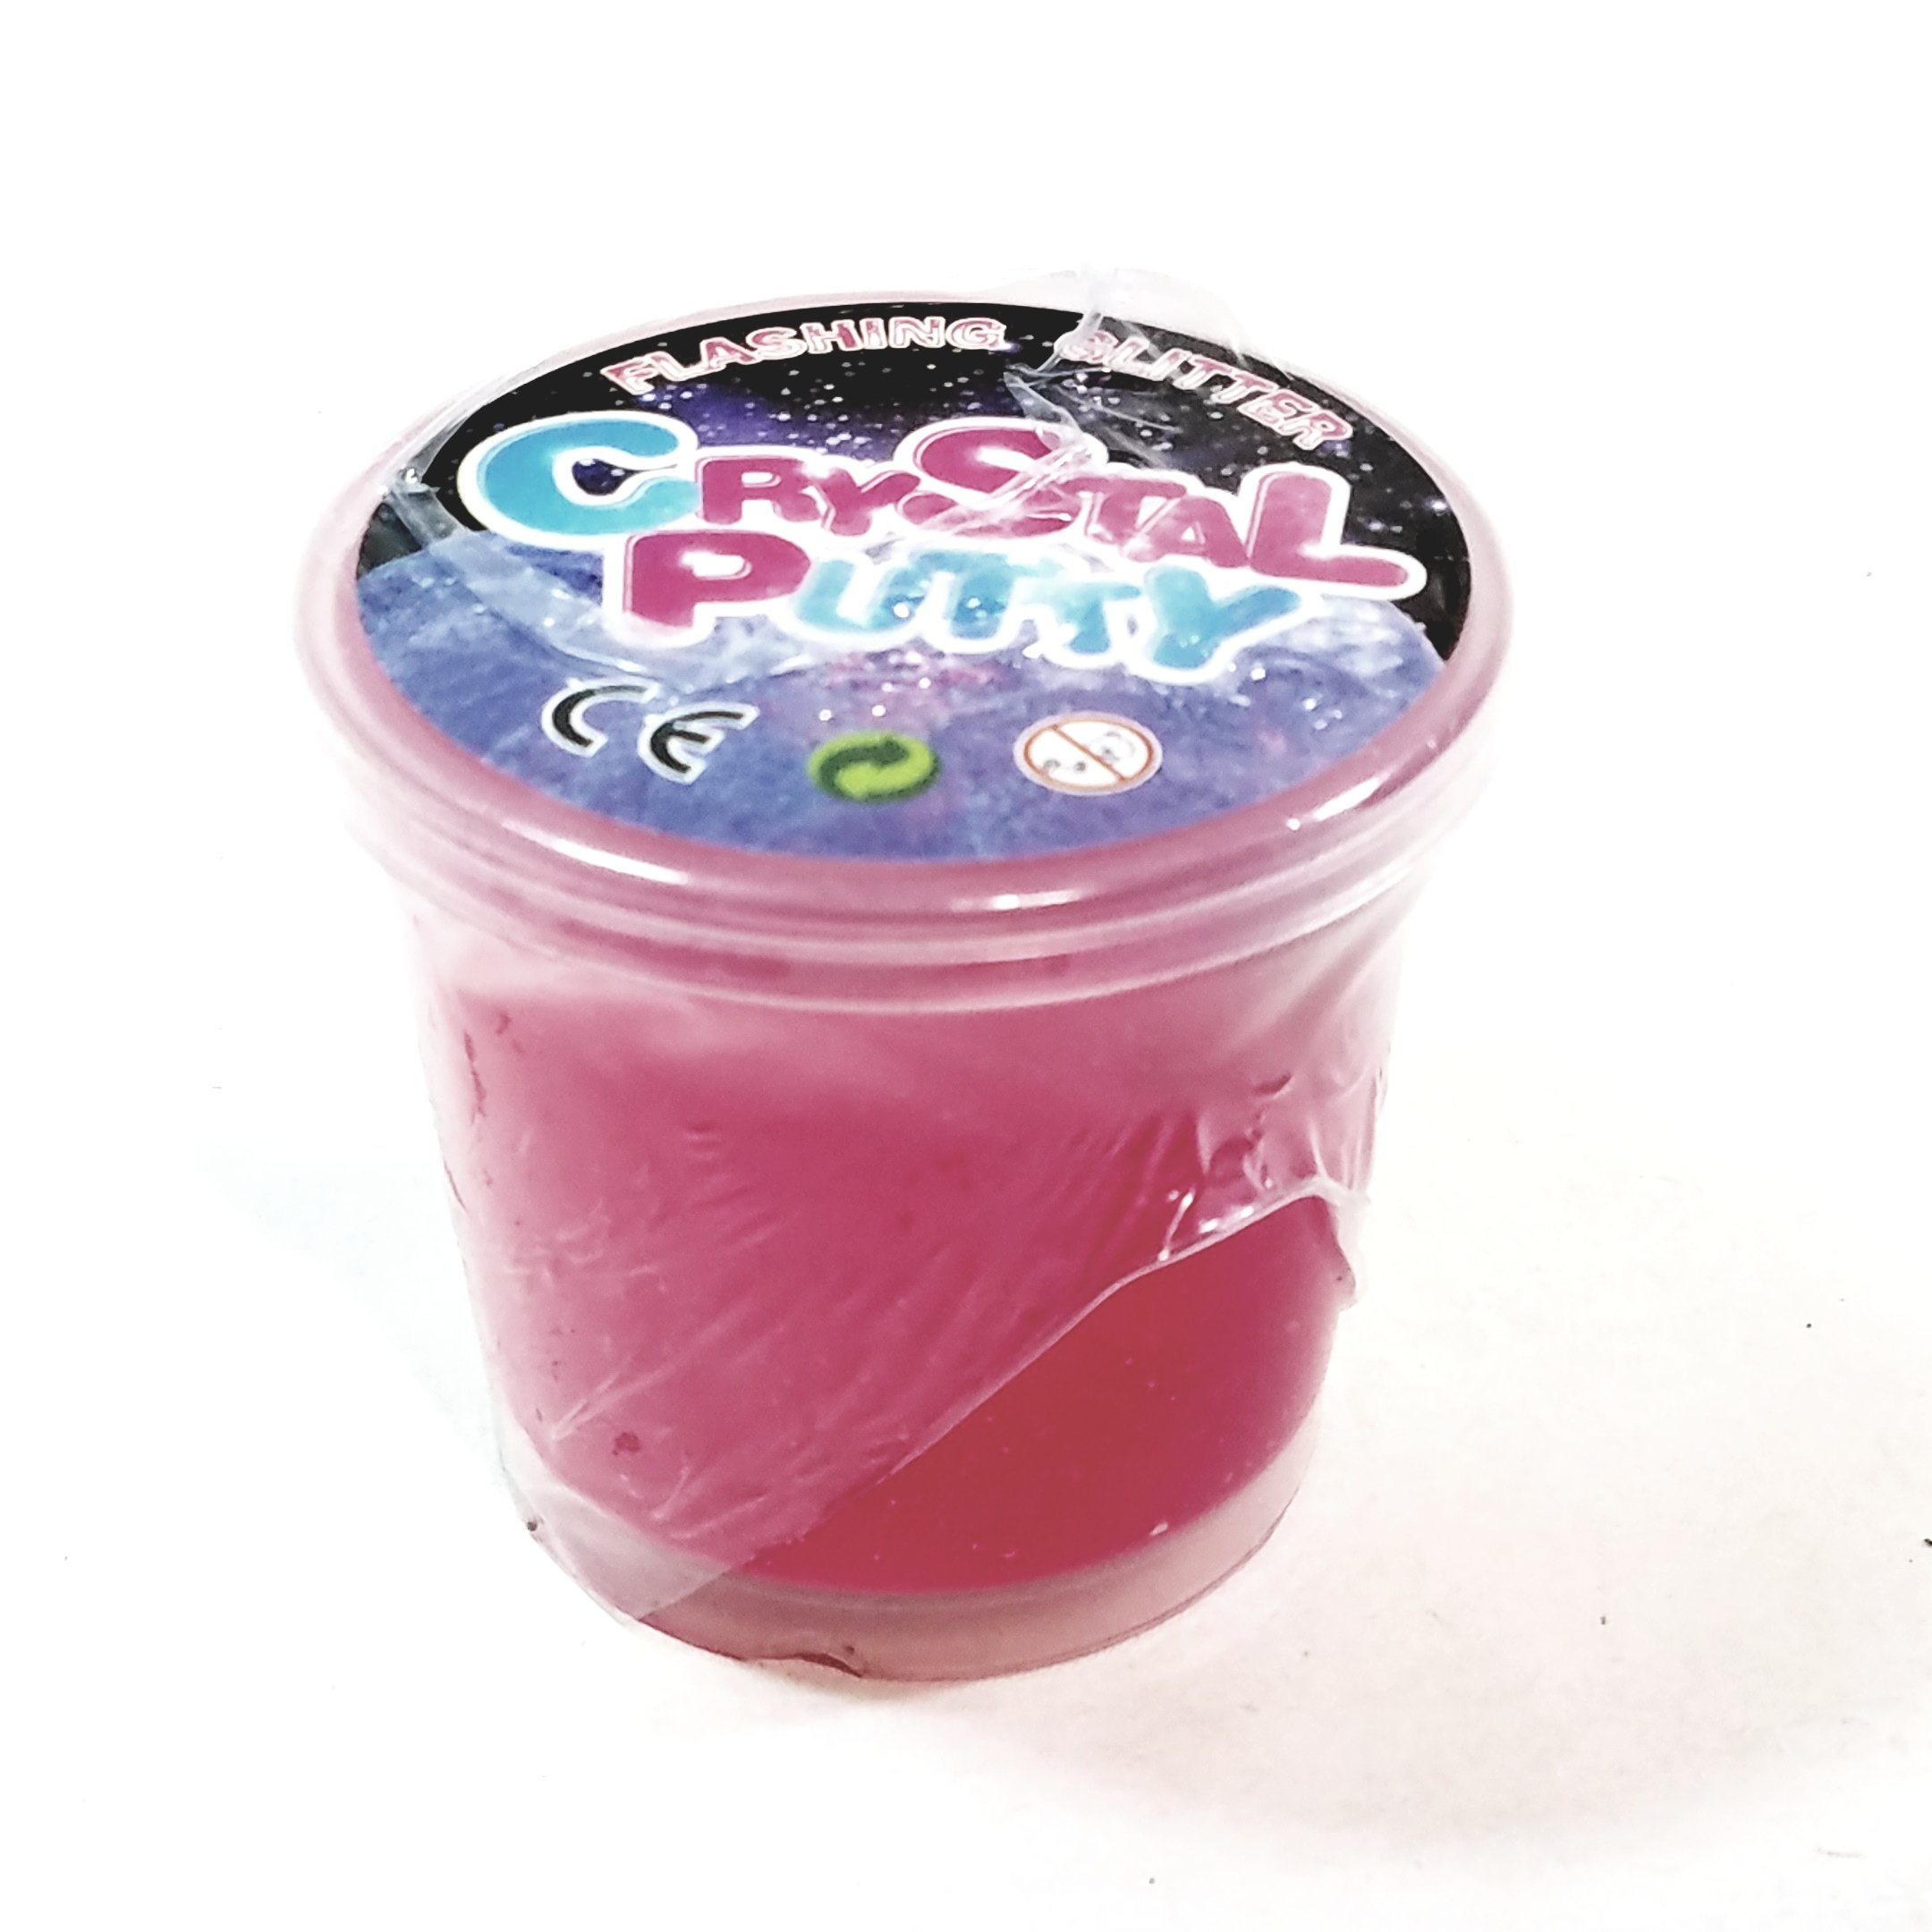 Flashing Glitter Crystal Putty Pink Glitter Slime With Flashing Light 100g In 3.5 oz Container Of Goop